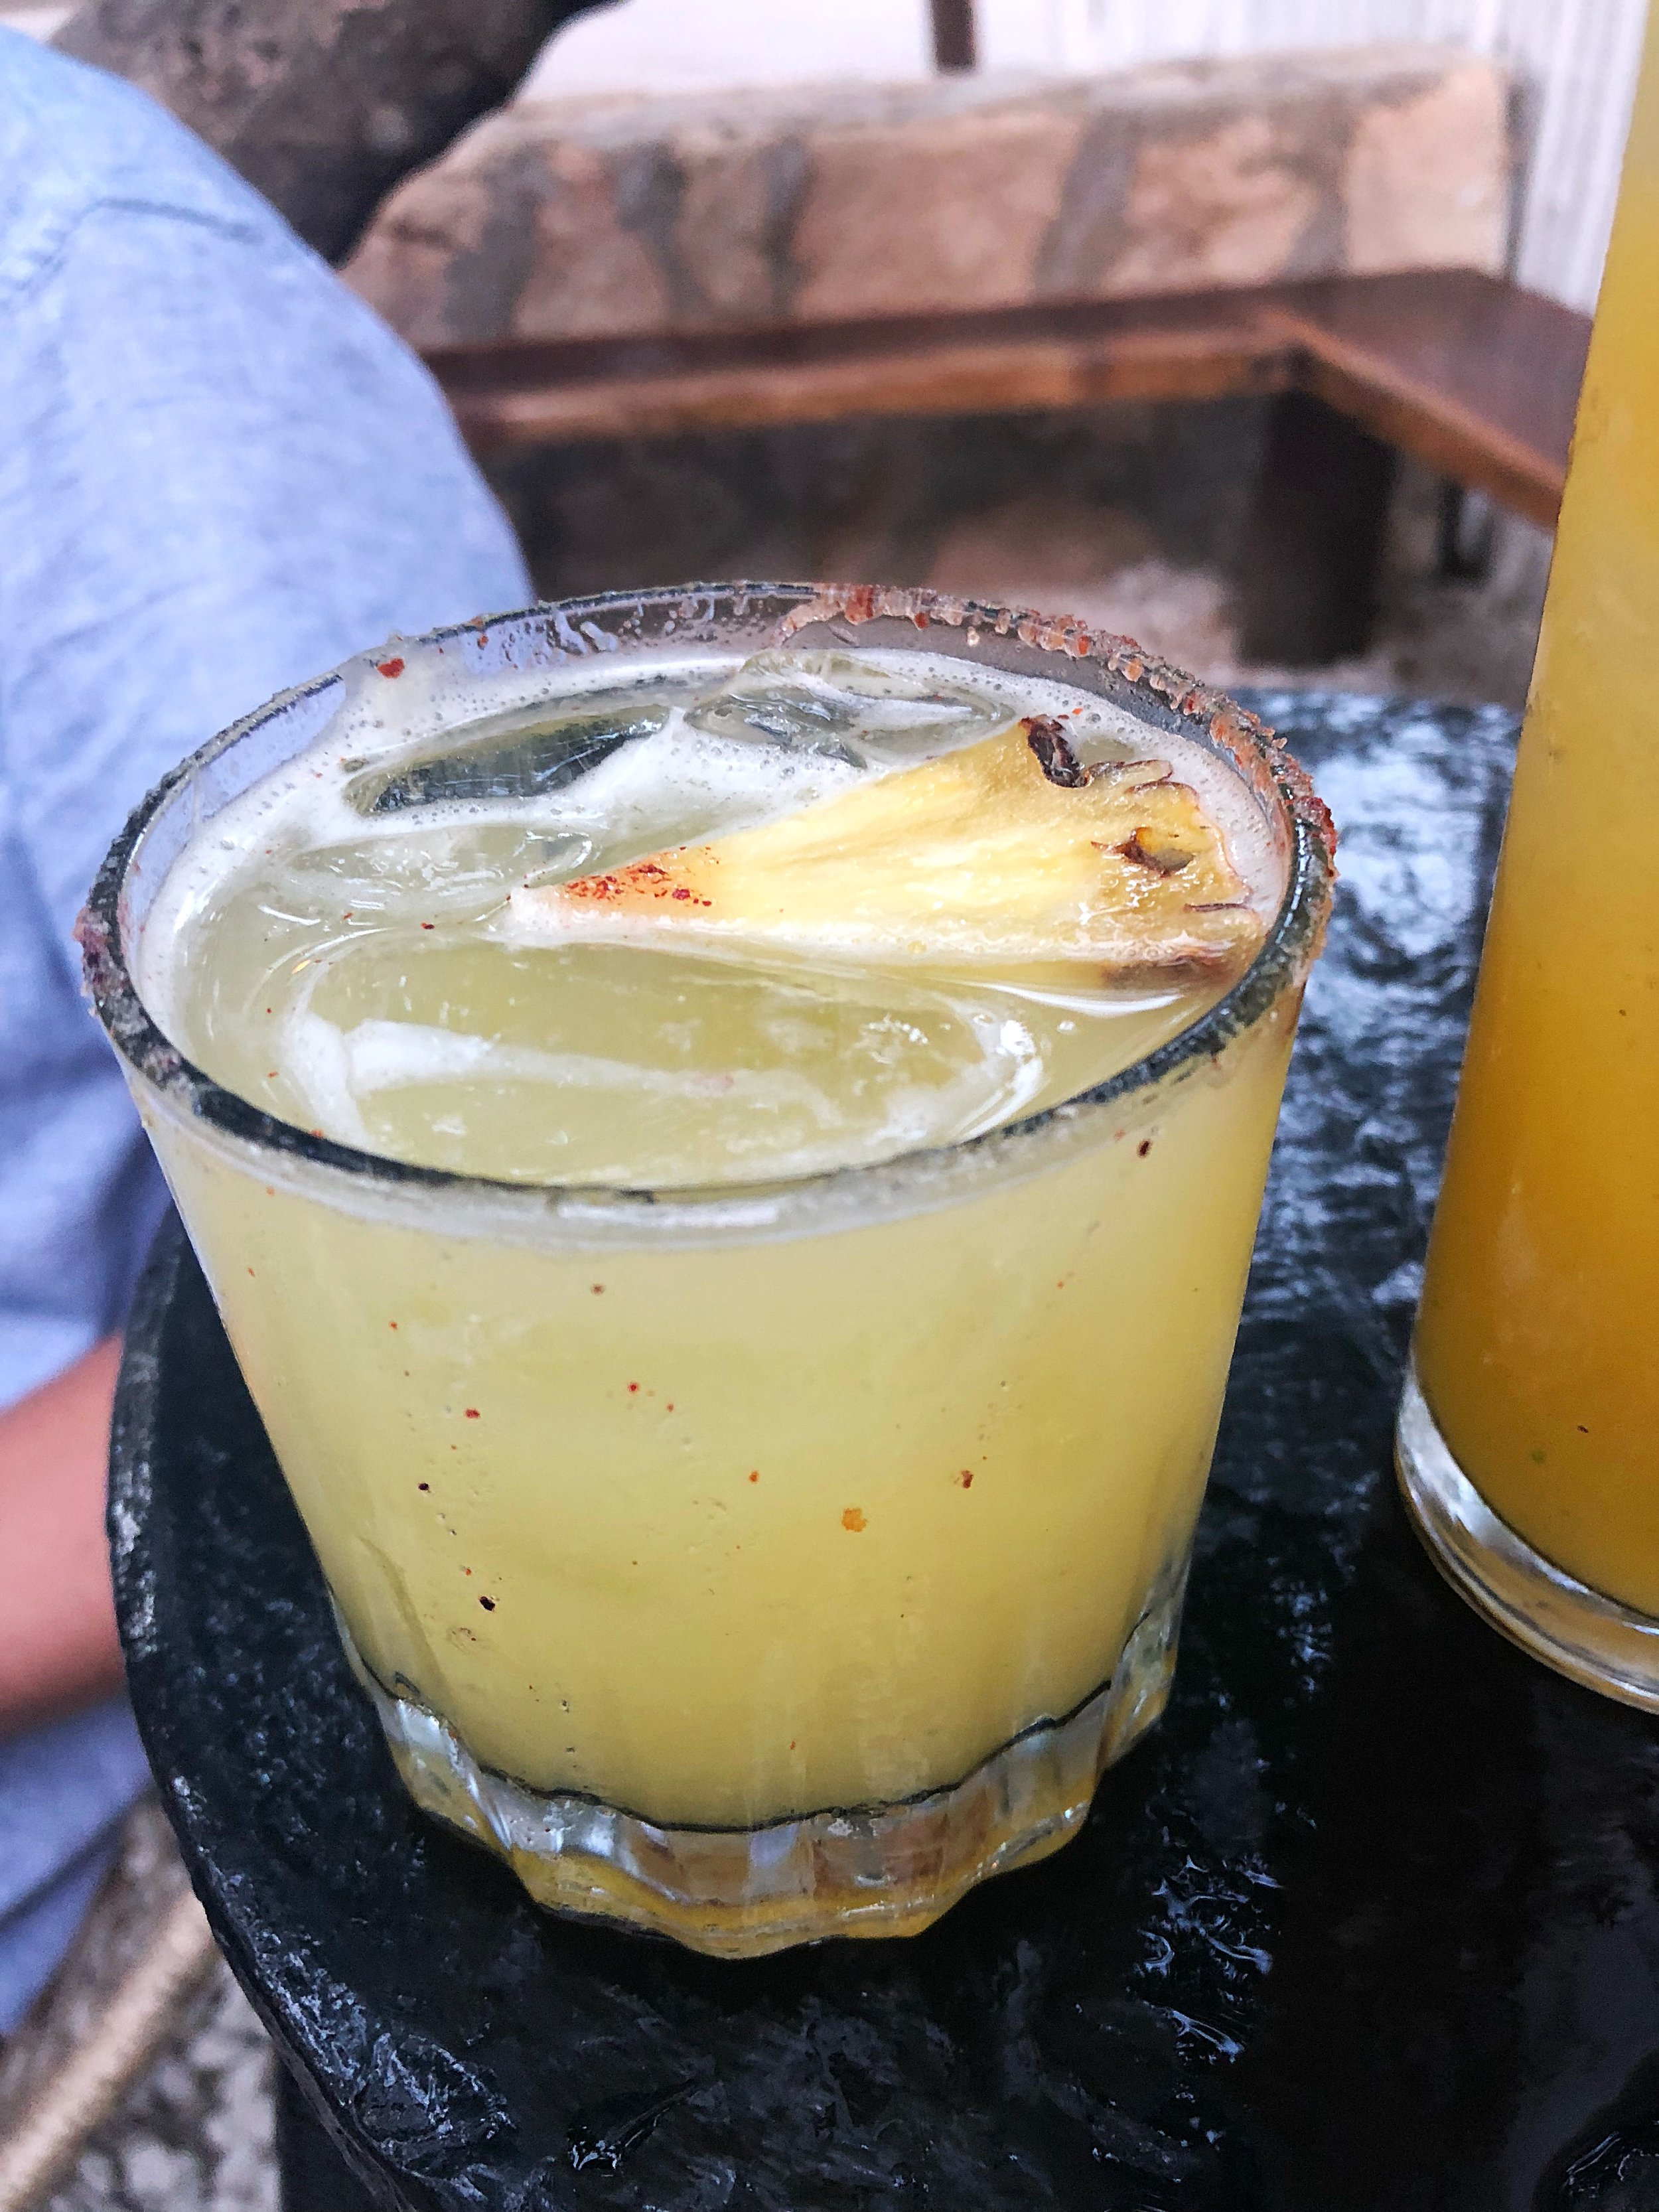 Margarita with grilled pineapple and habanero